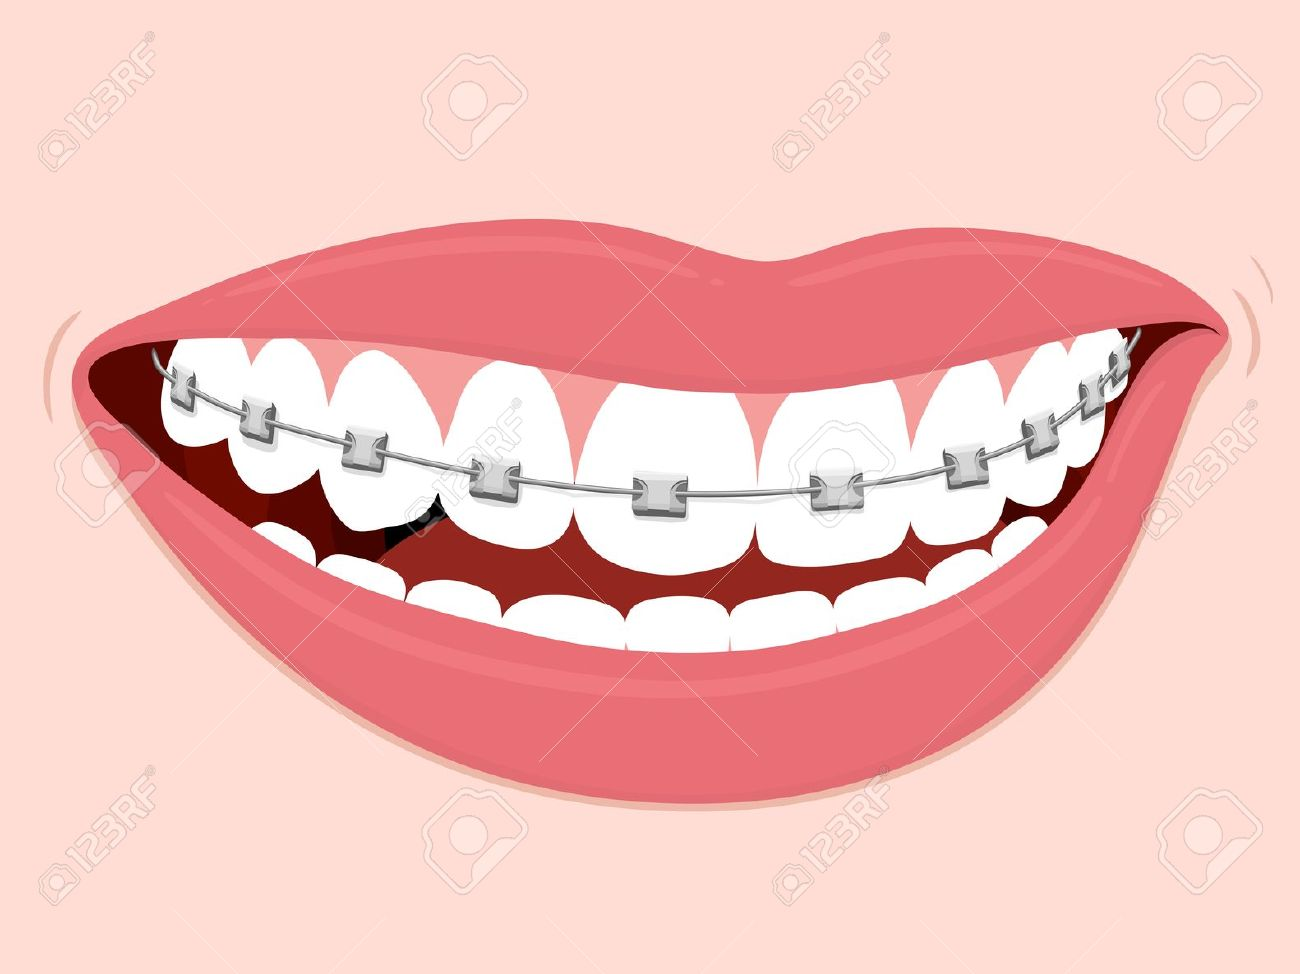 Braces clipart draw.  collection of smile